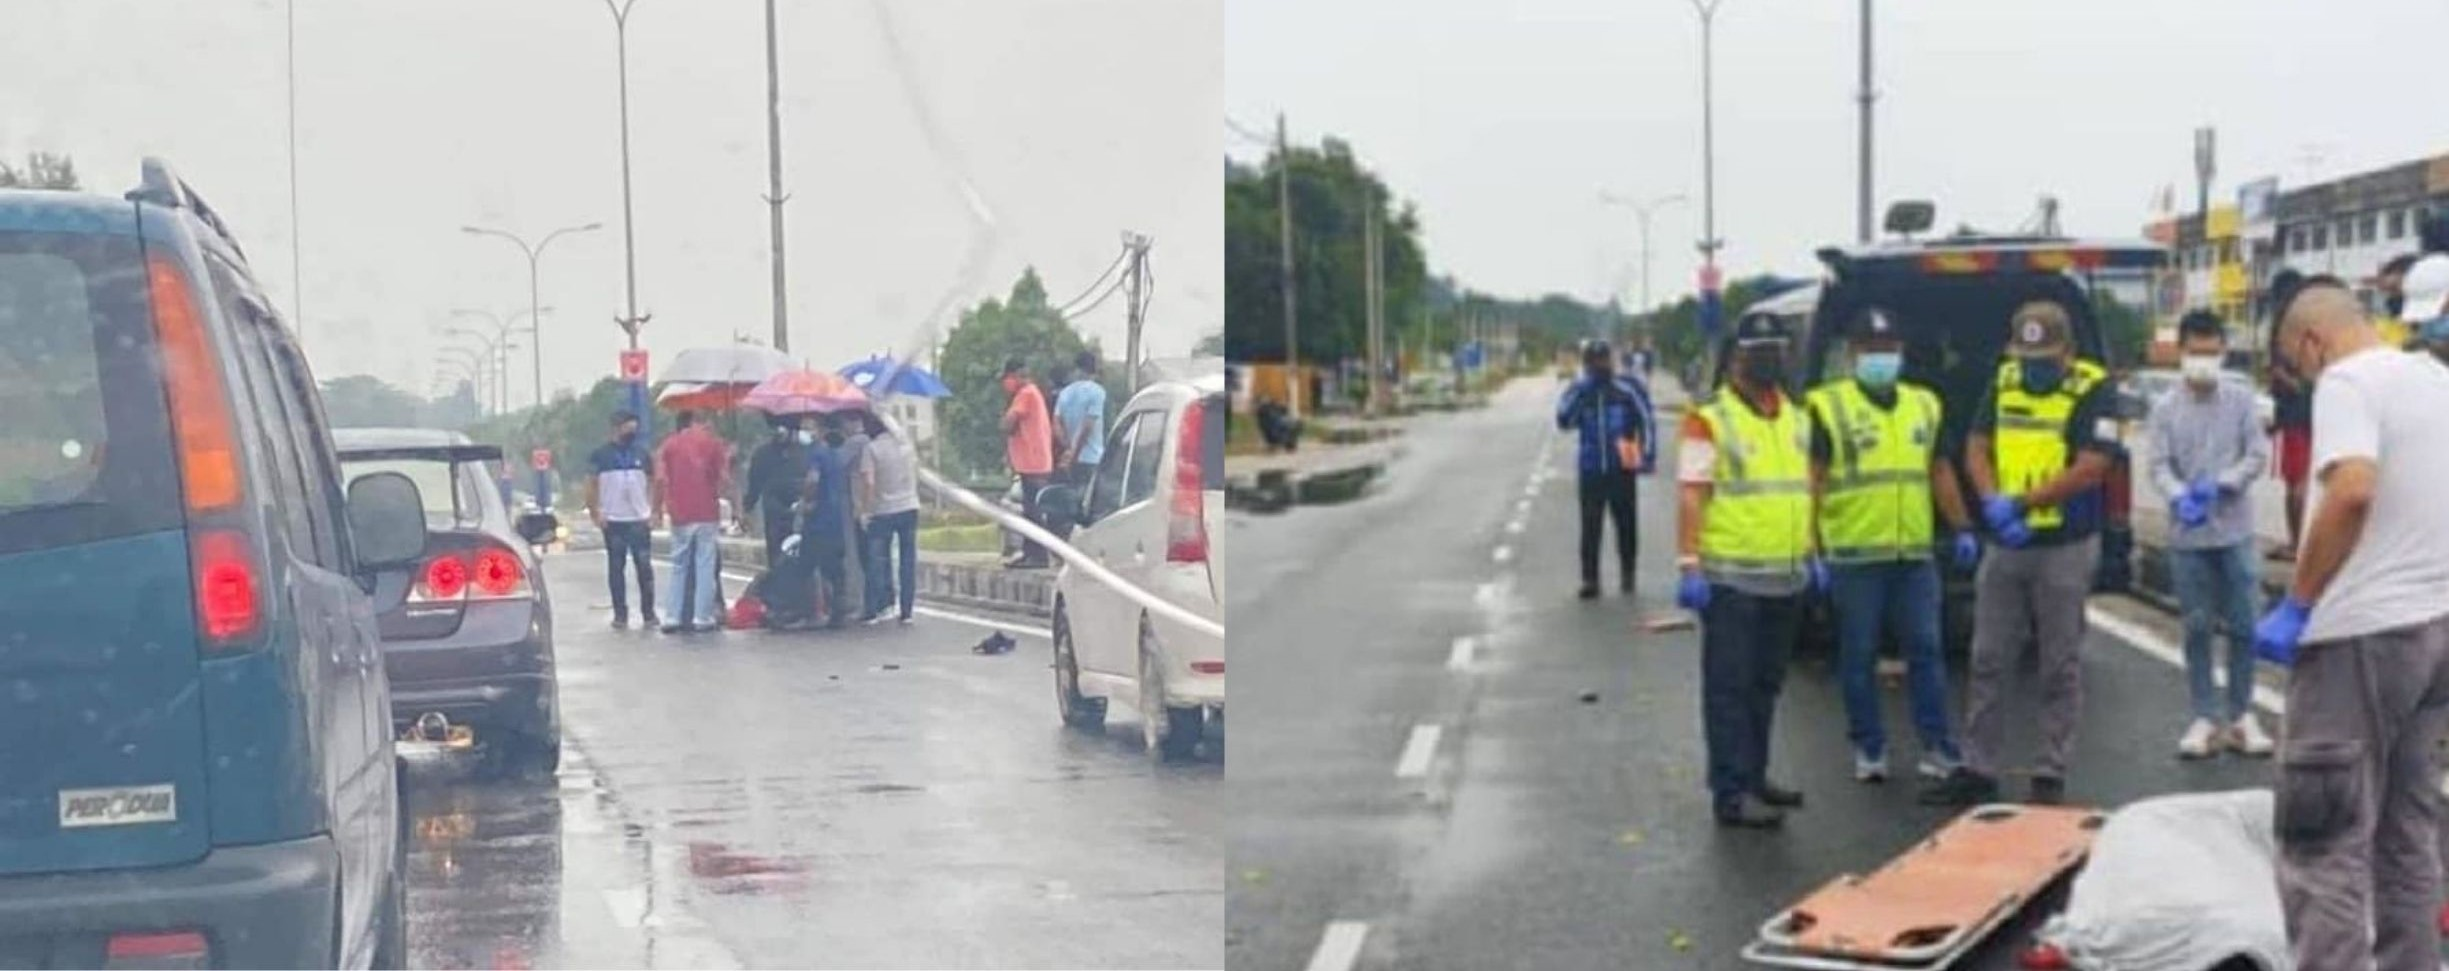 Policeman Crashes Into Woman While She Was Crossing The Road